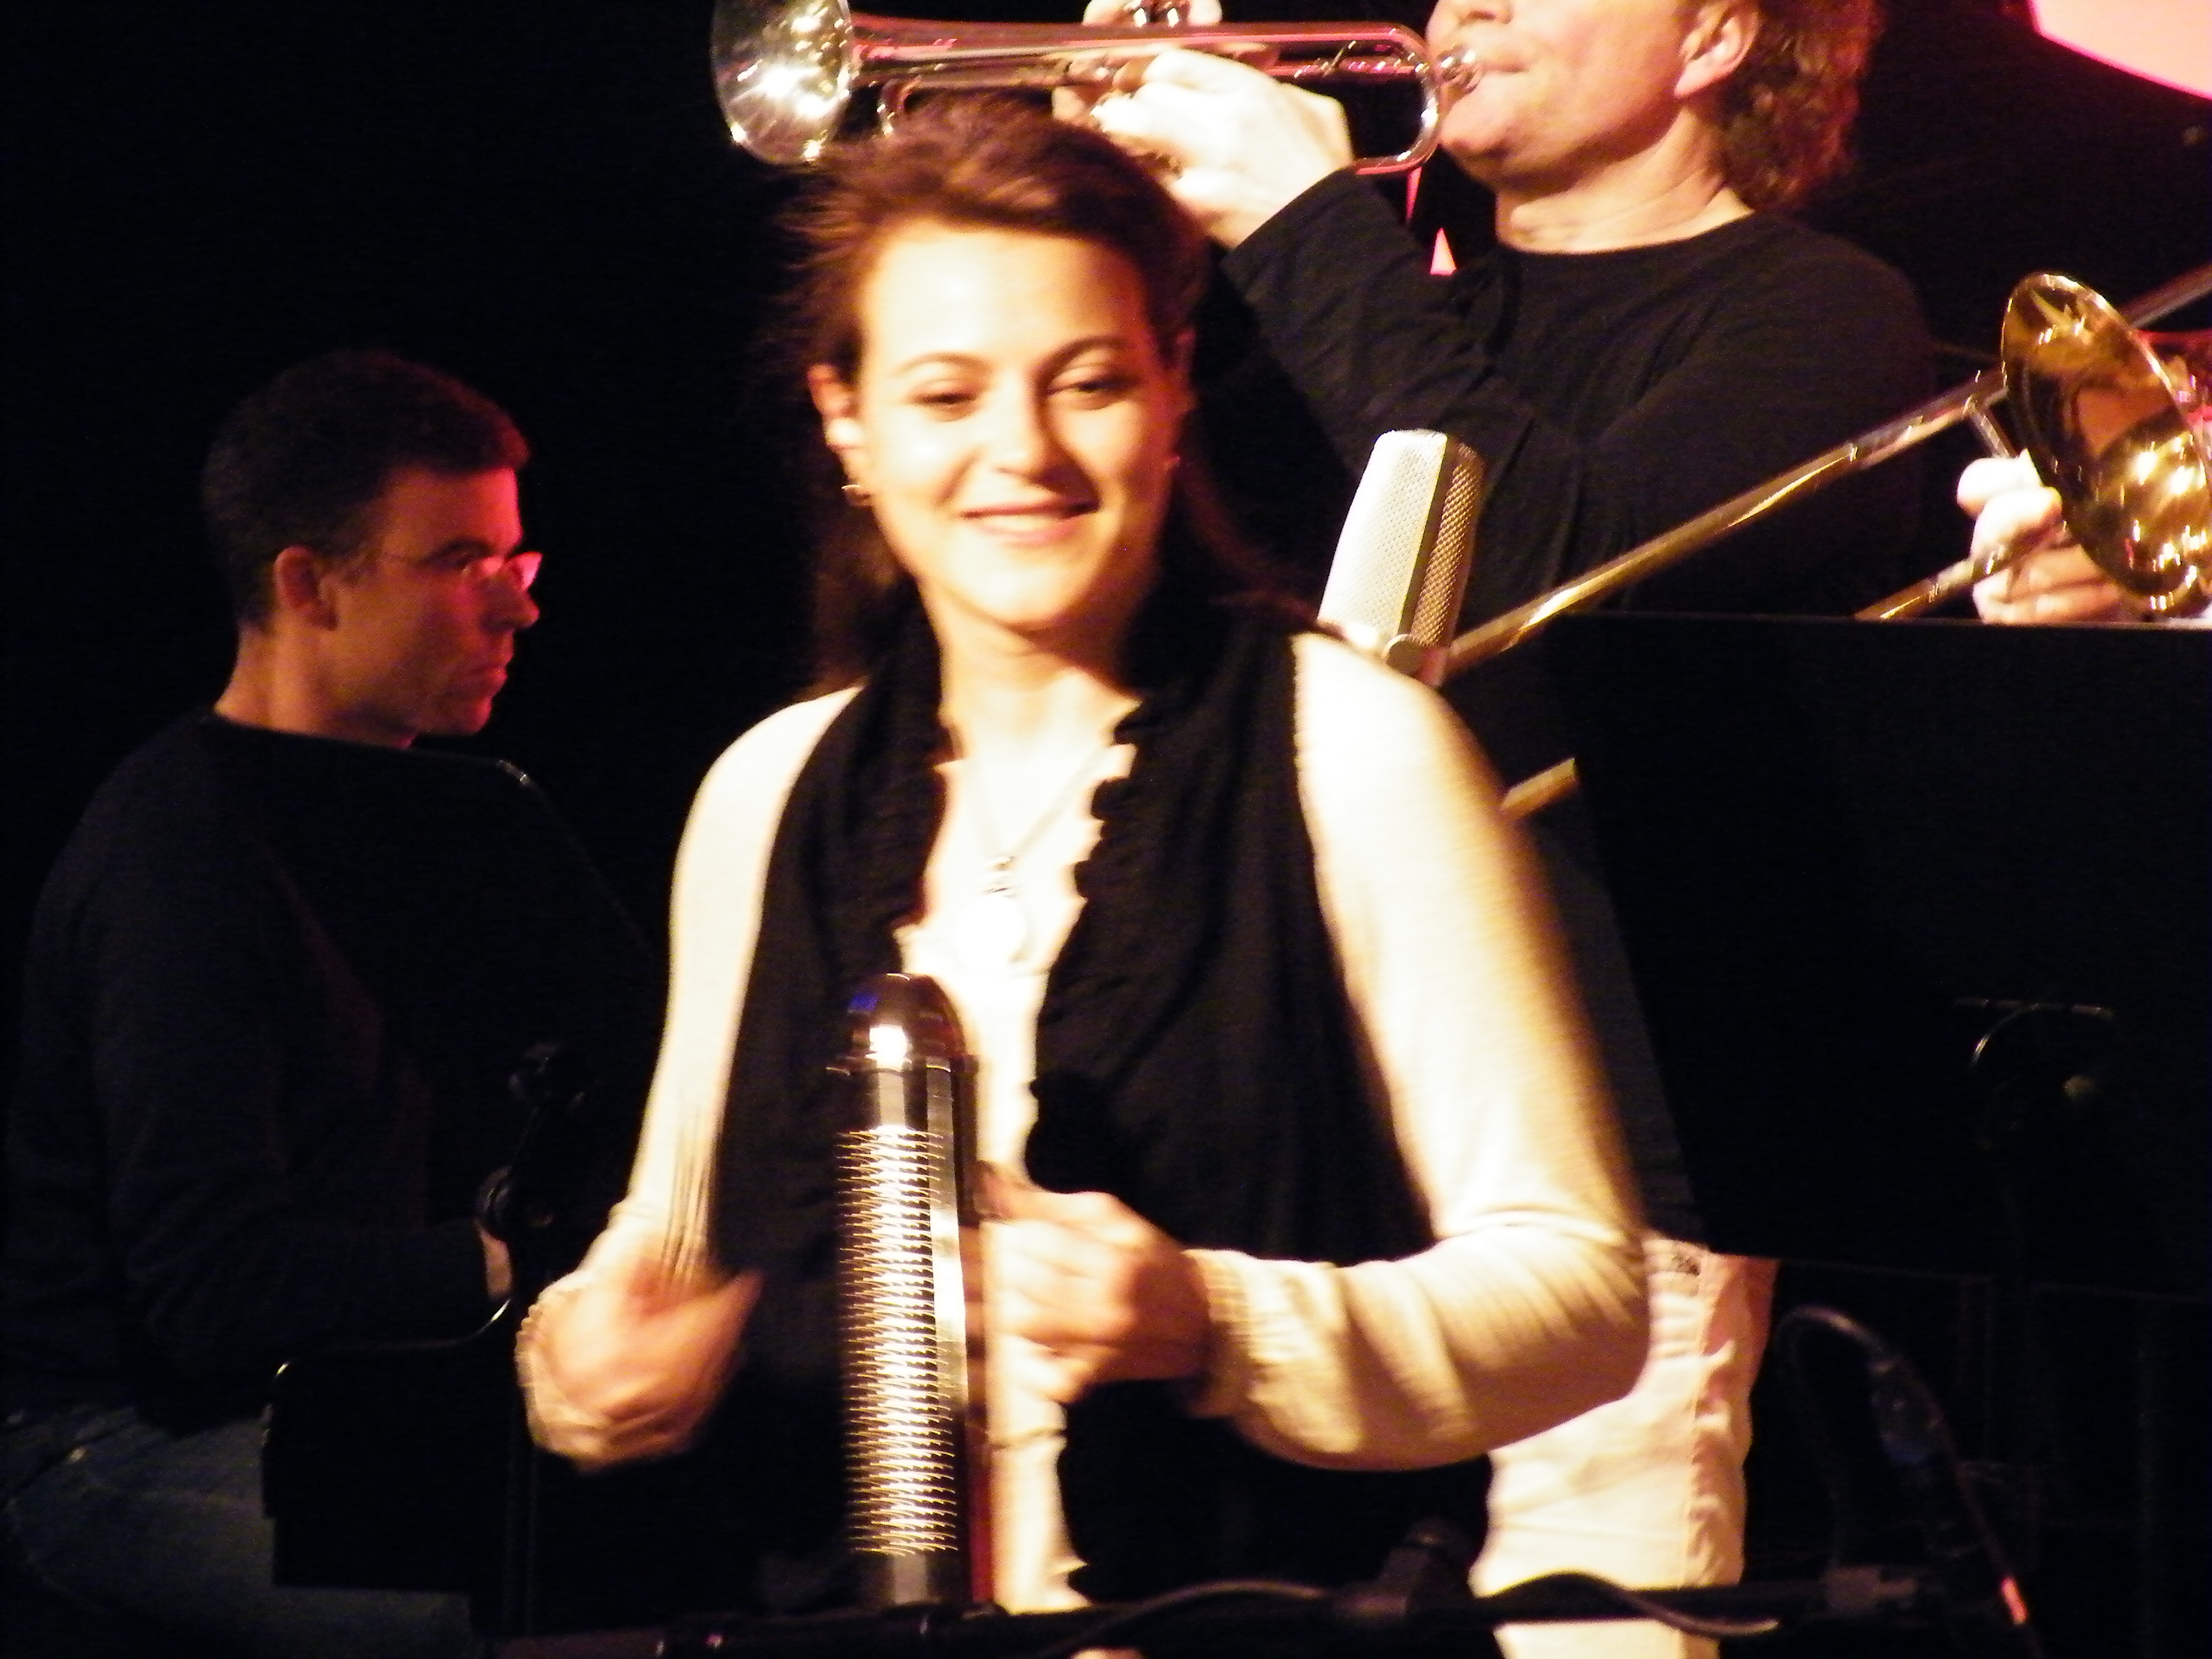 sandra on percussion